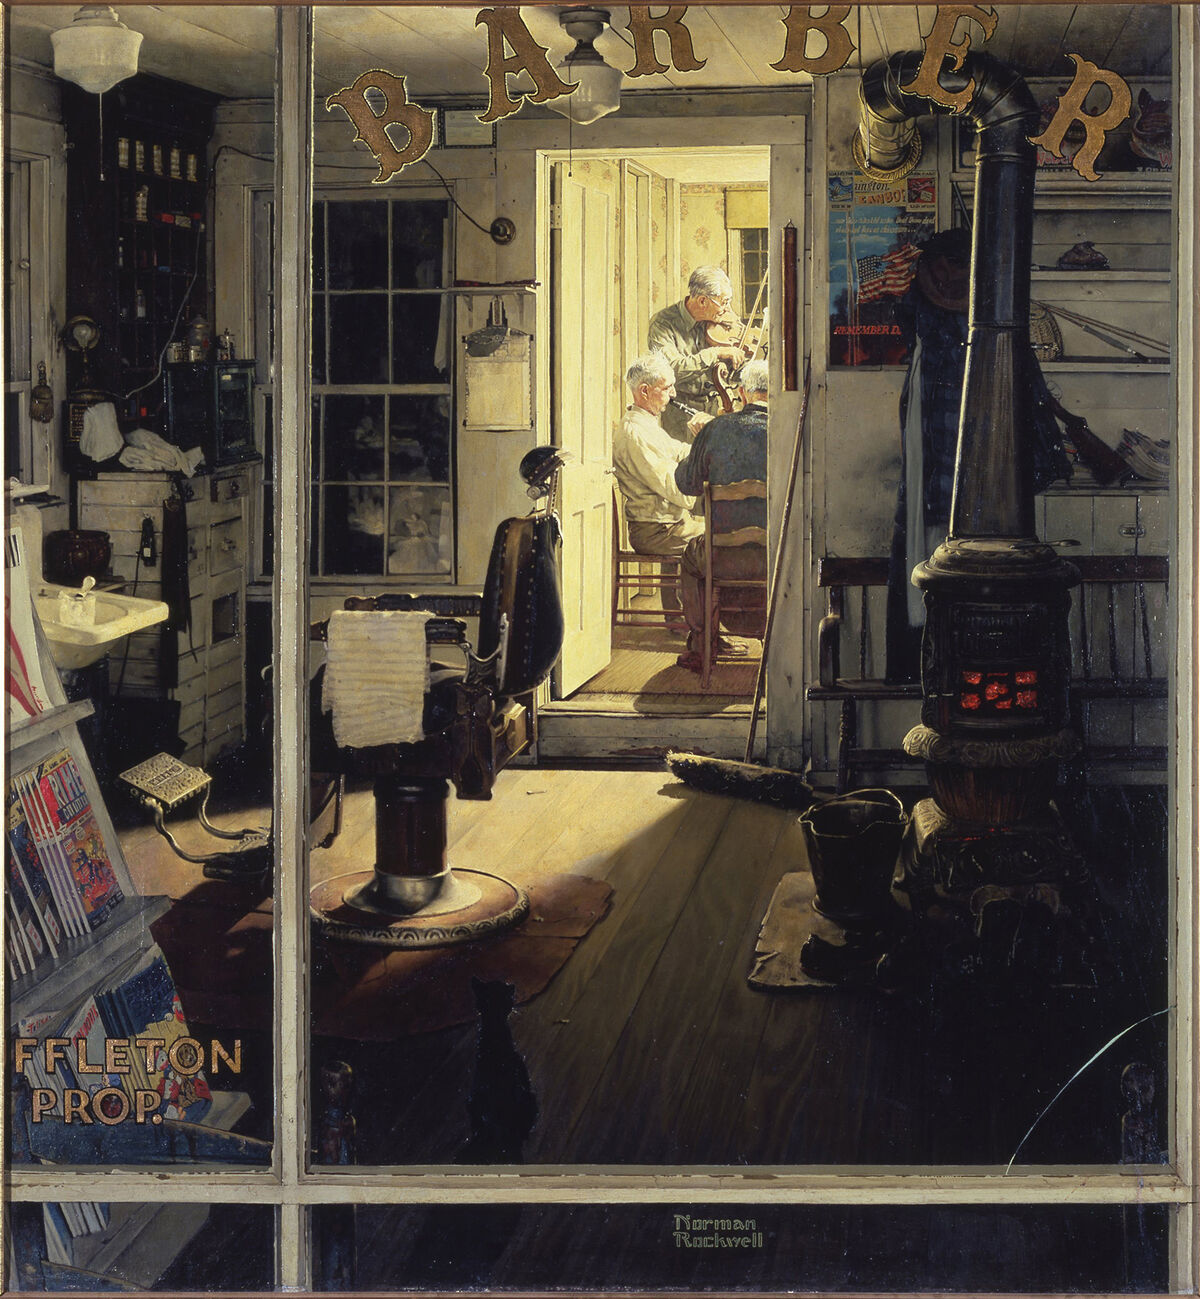 Norman Rockwell, Shuffleton's Barbershop, 1950. Cover illustration forThe Saturday Evening Post, April 29, 1950. © SEPS: Licensed by Curtis Licensing, Indianapolis, IN. Courtesy of the Lucas Museum of Narrative Art and the Norman Rockwell Museum.